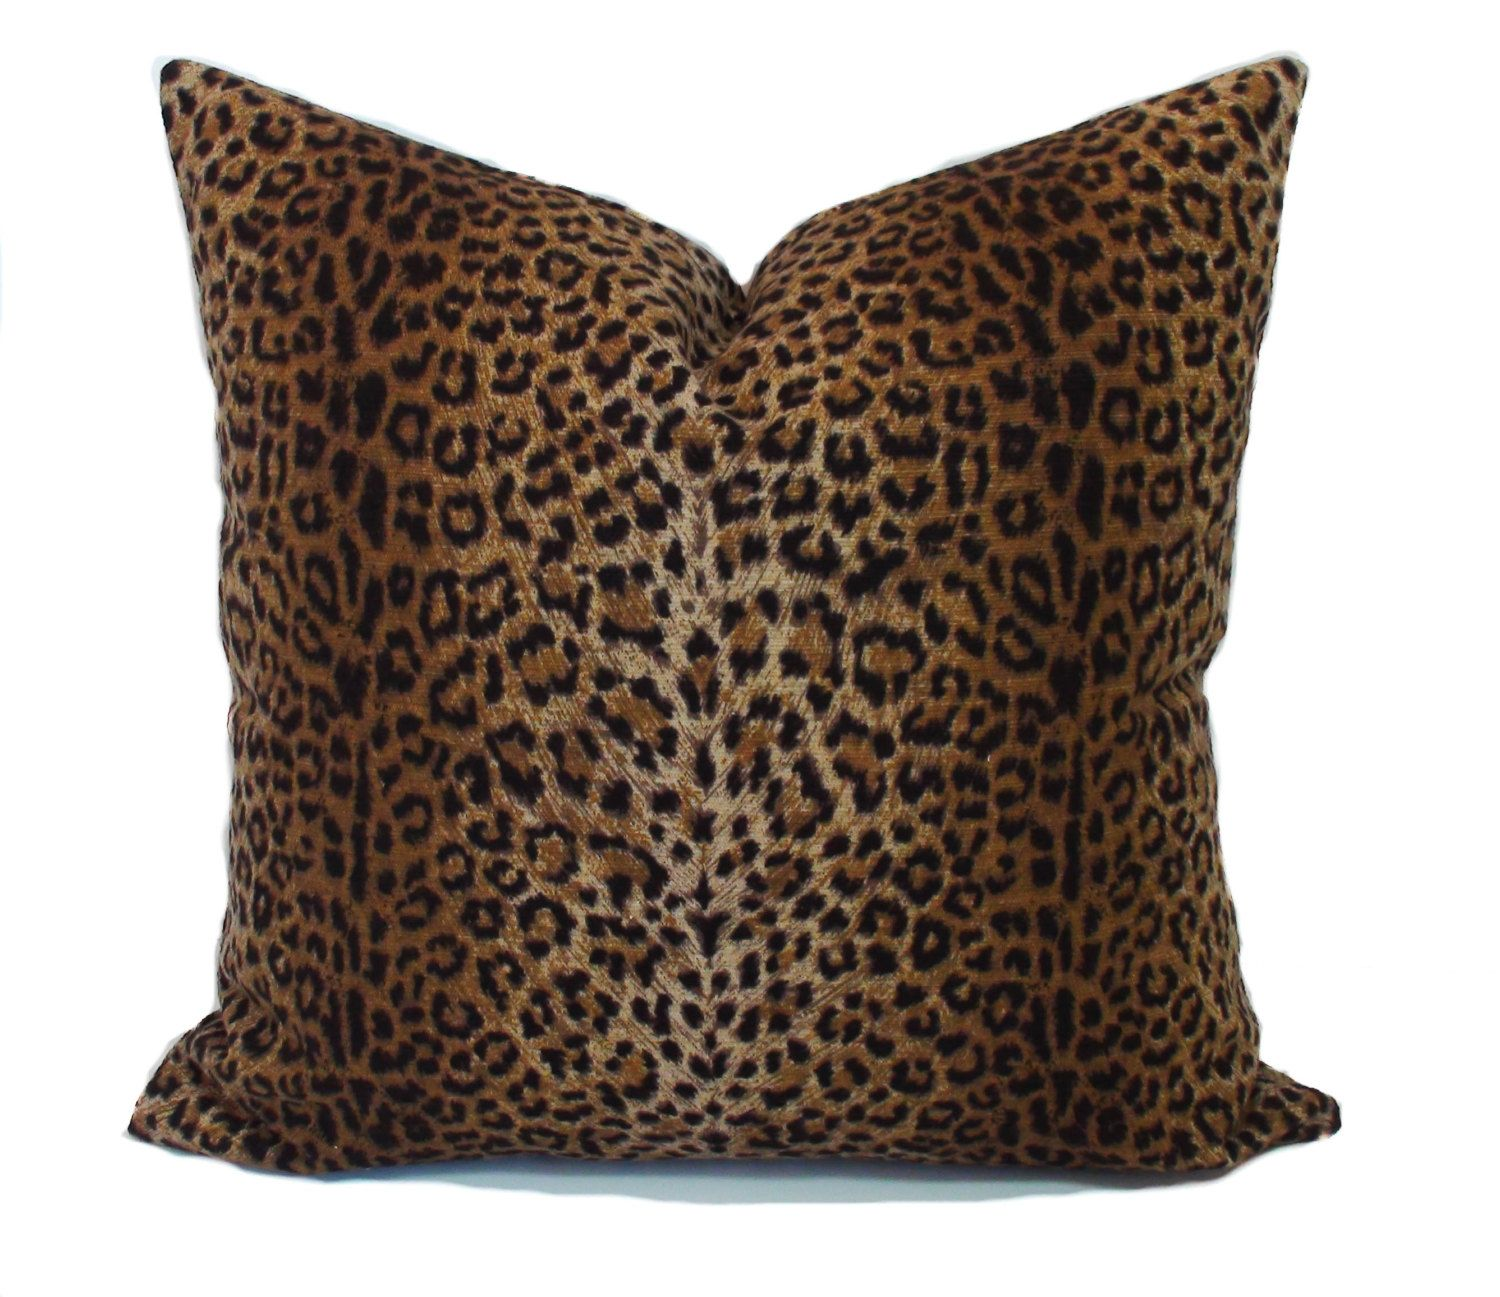 Leopard pillow cover, Leopard print pillows, Animal print pillow ...